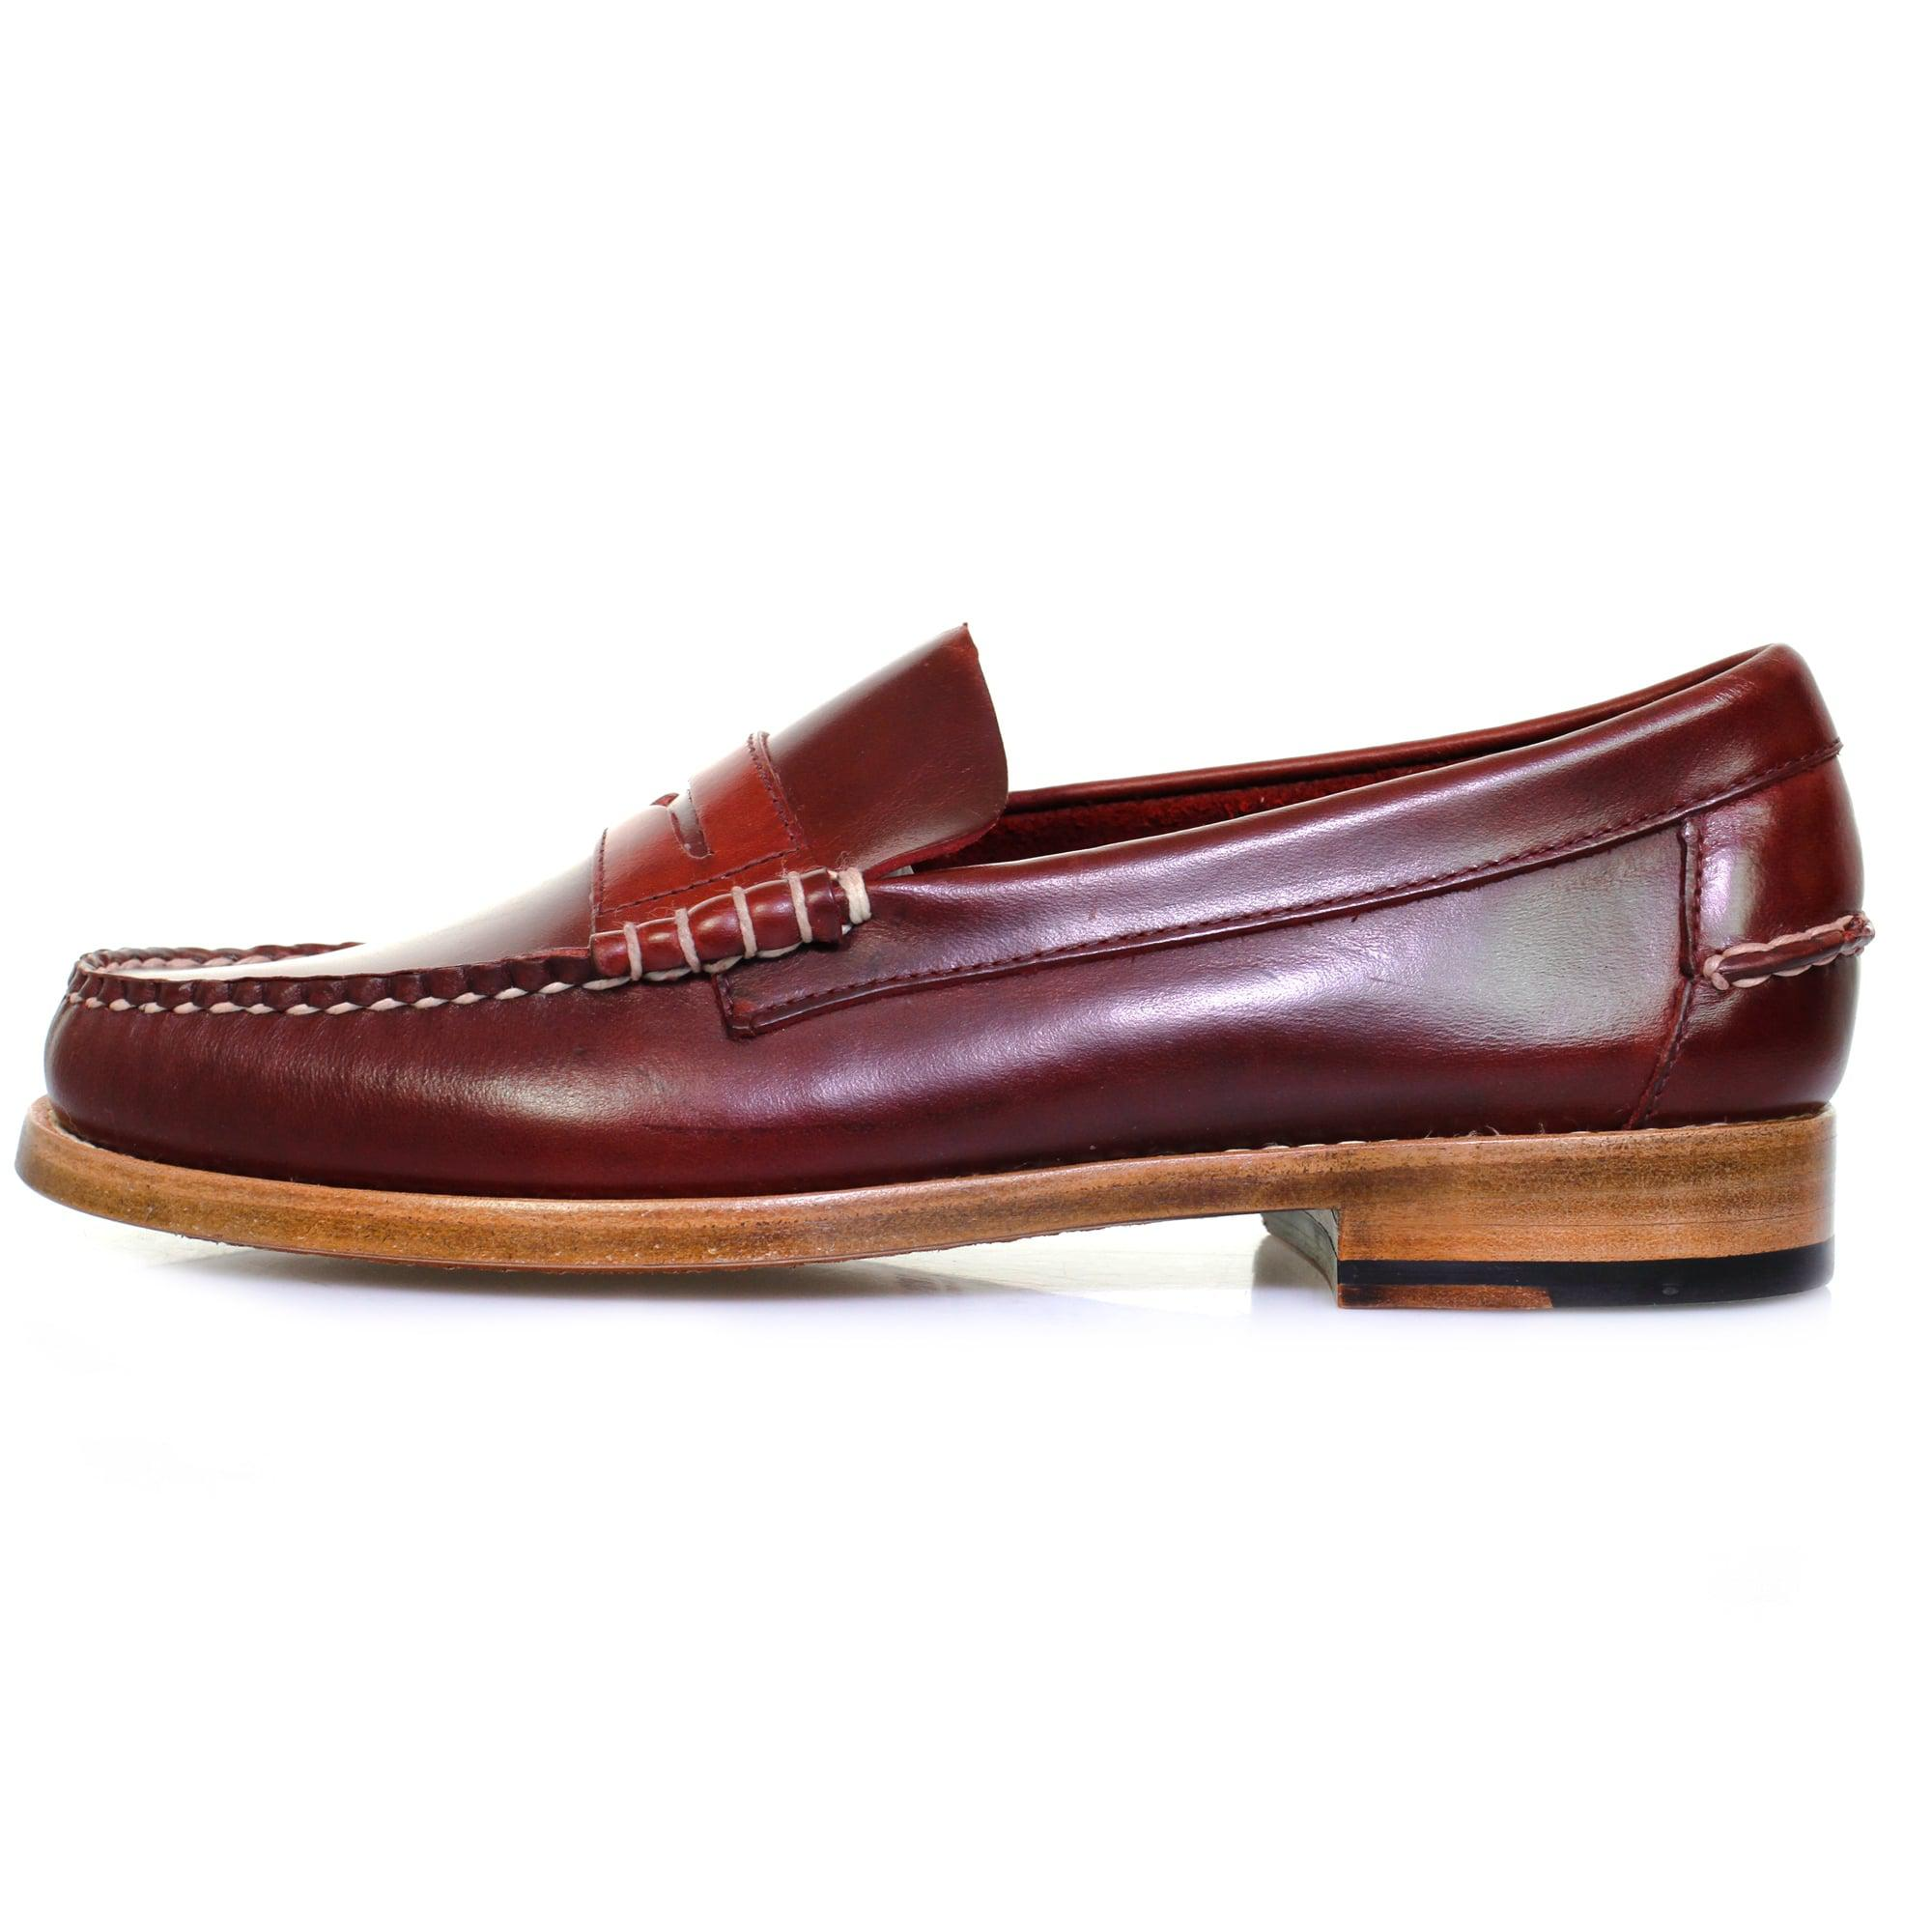 84a76c531bf Sebago Legacy Penny Red Loafer Shoe in Red for Men - Lyst